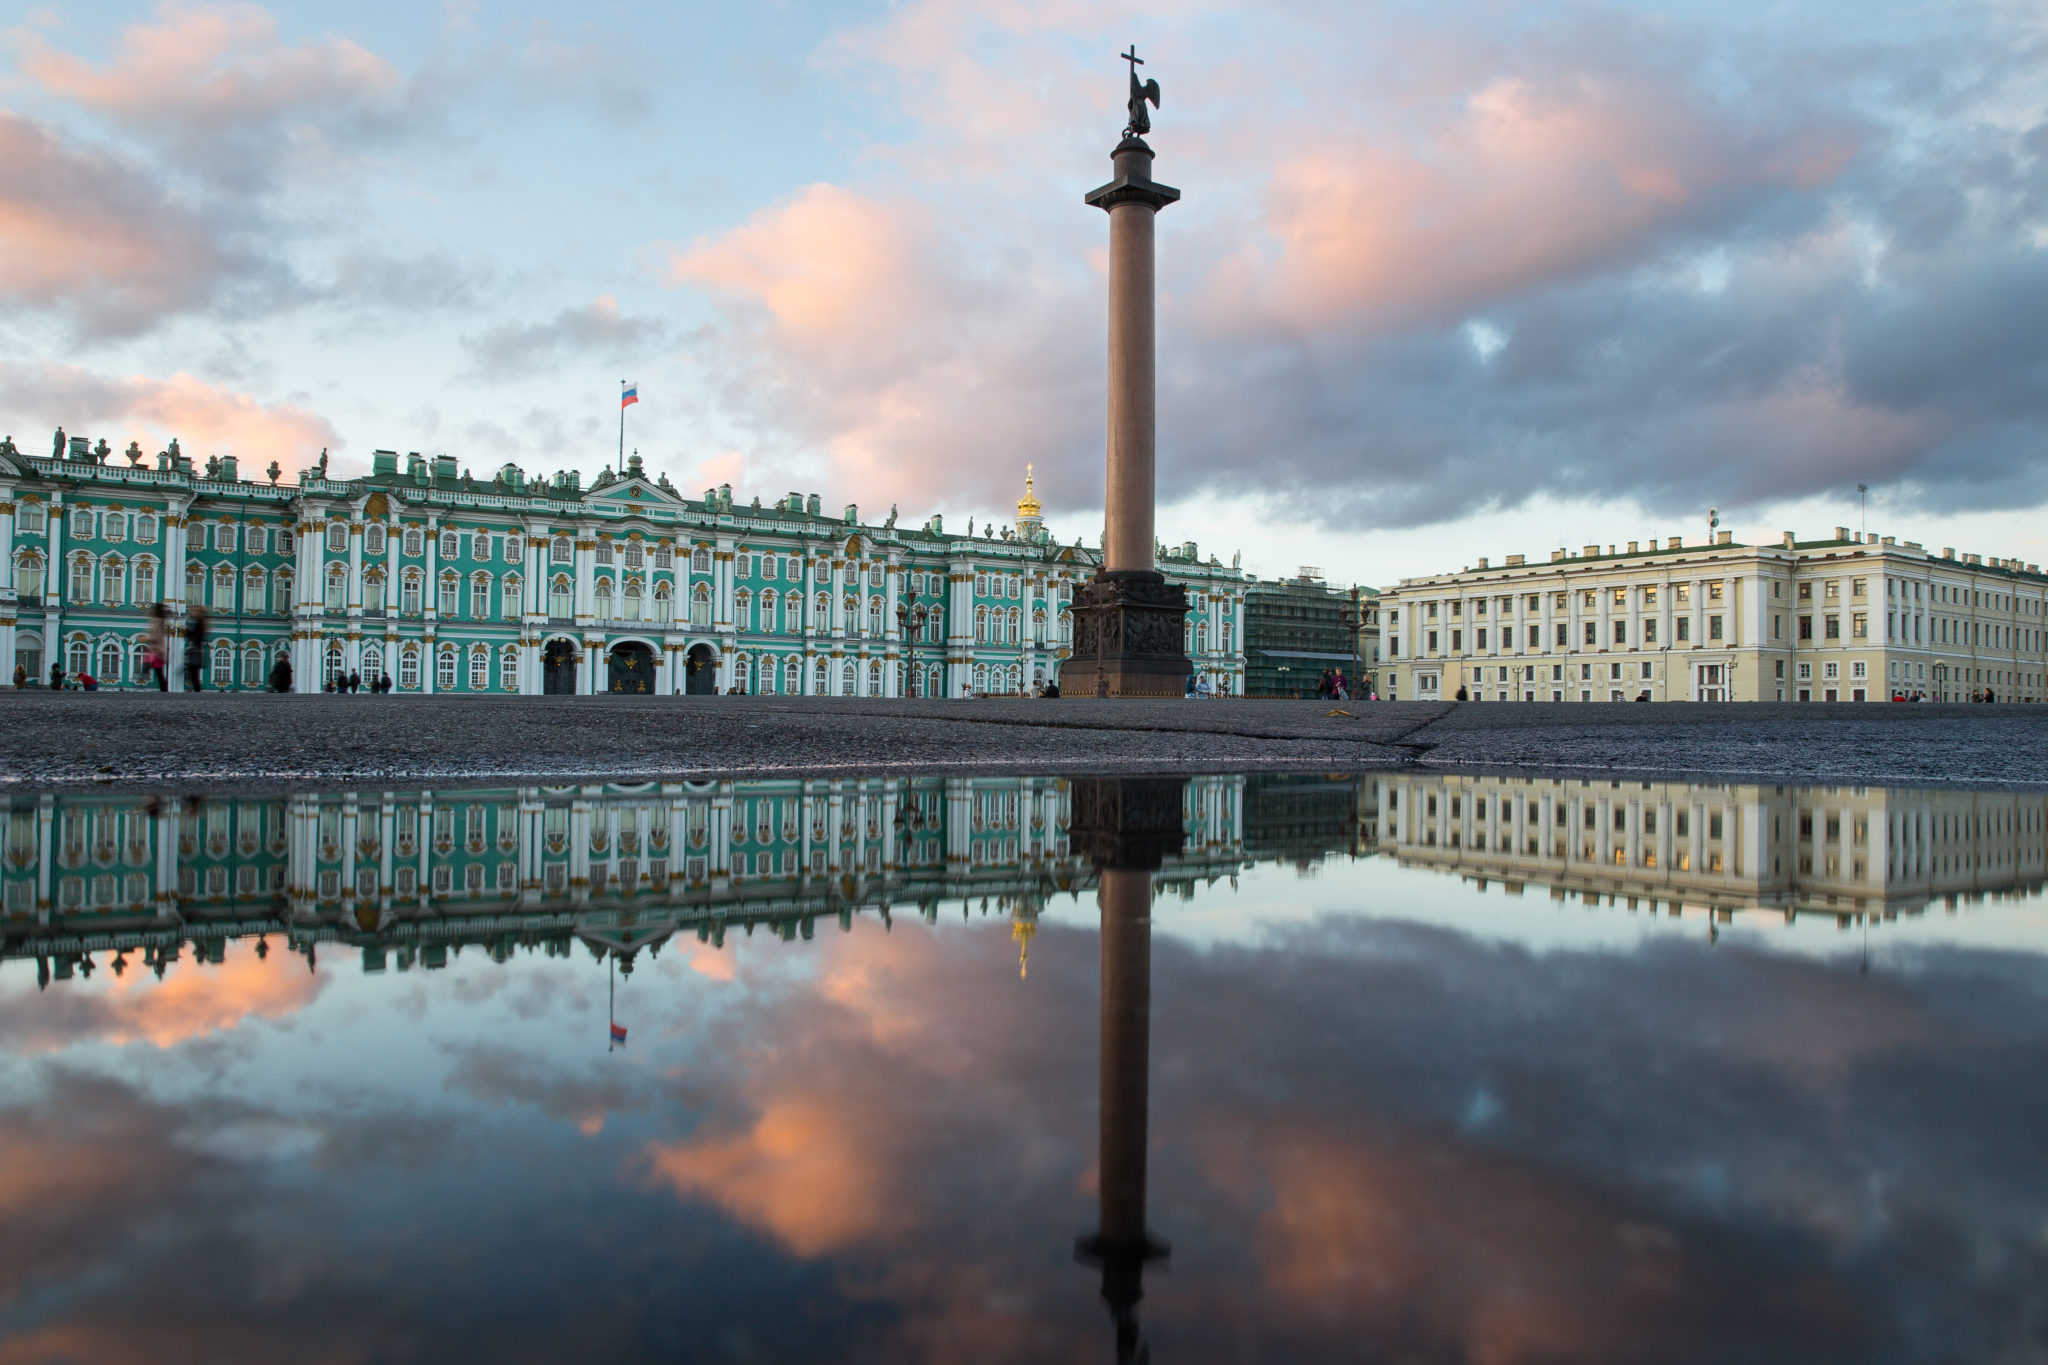 Plac Pałacowy Petersburg